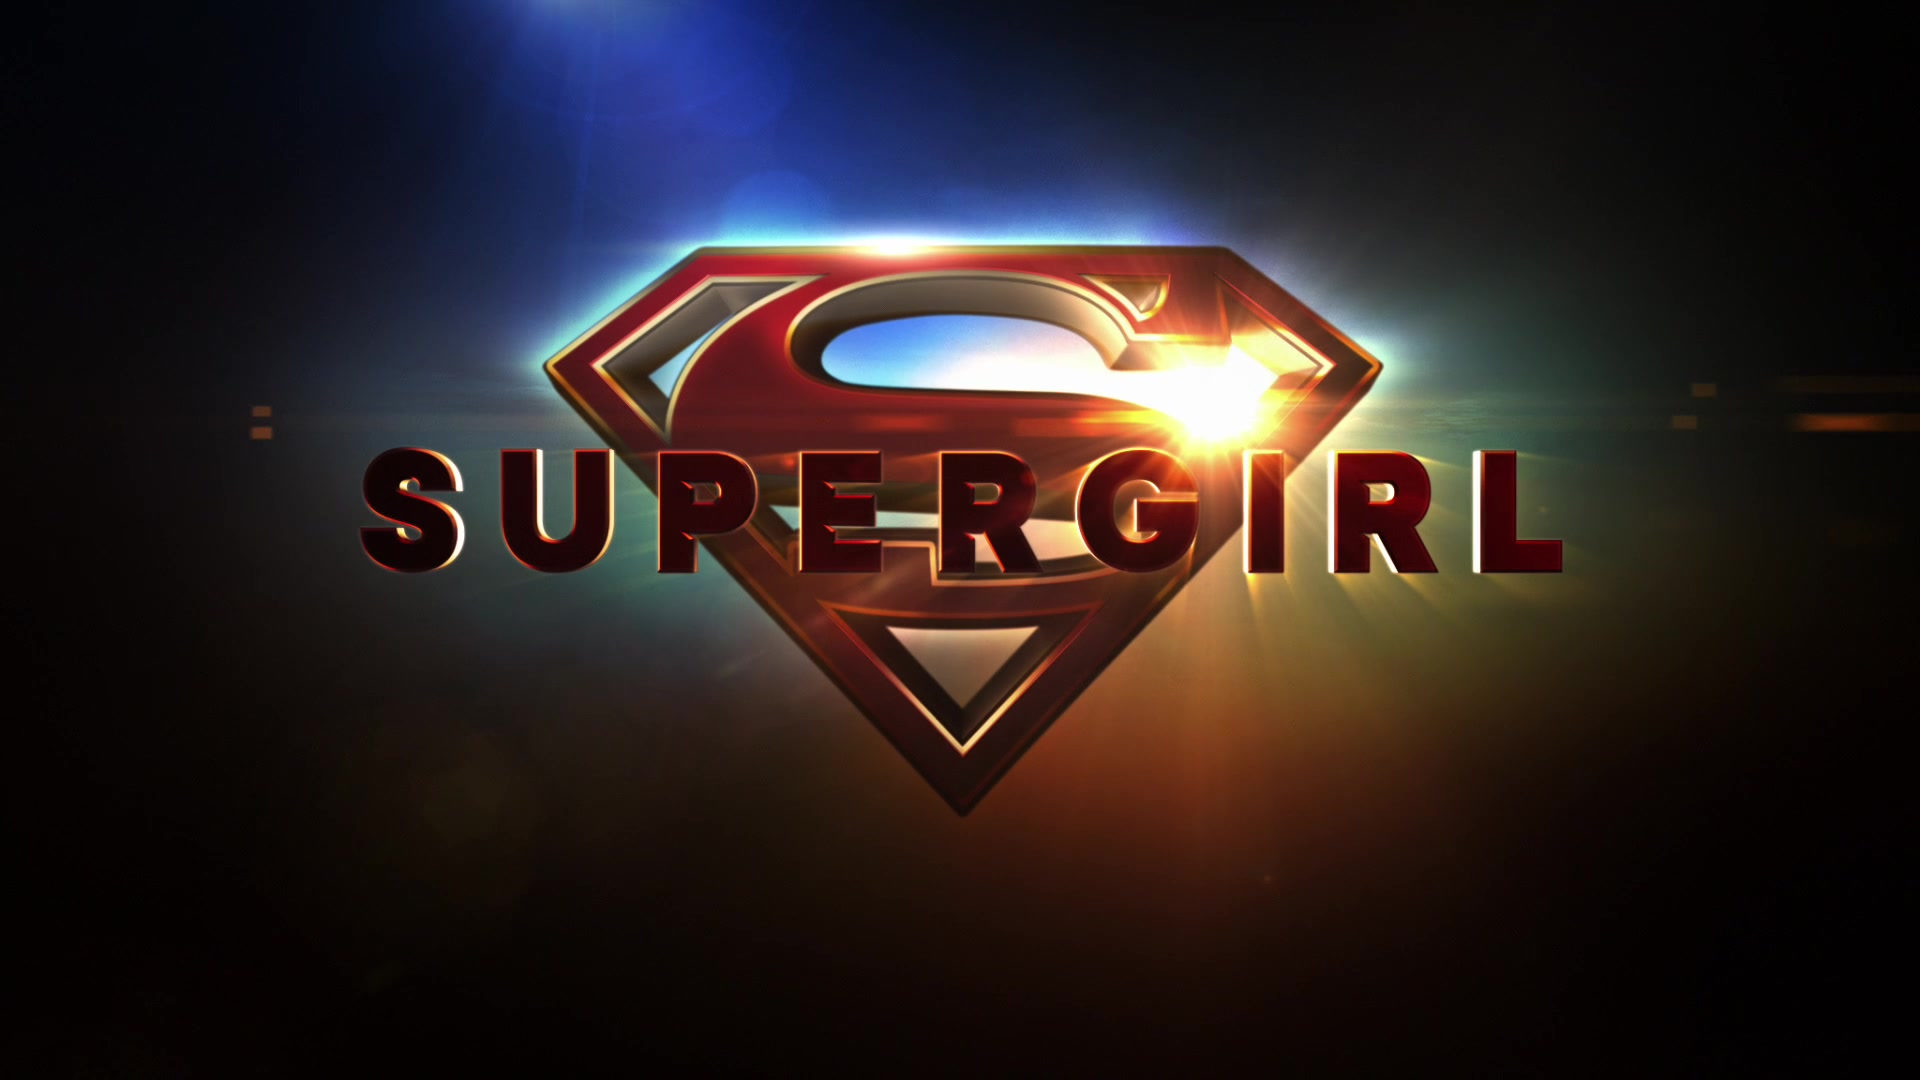 Supergirl (TV Series) Episode: Stranger Beside Me